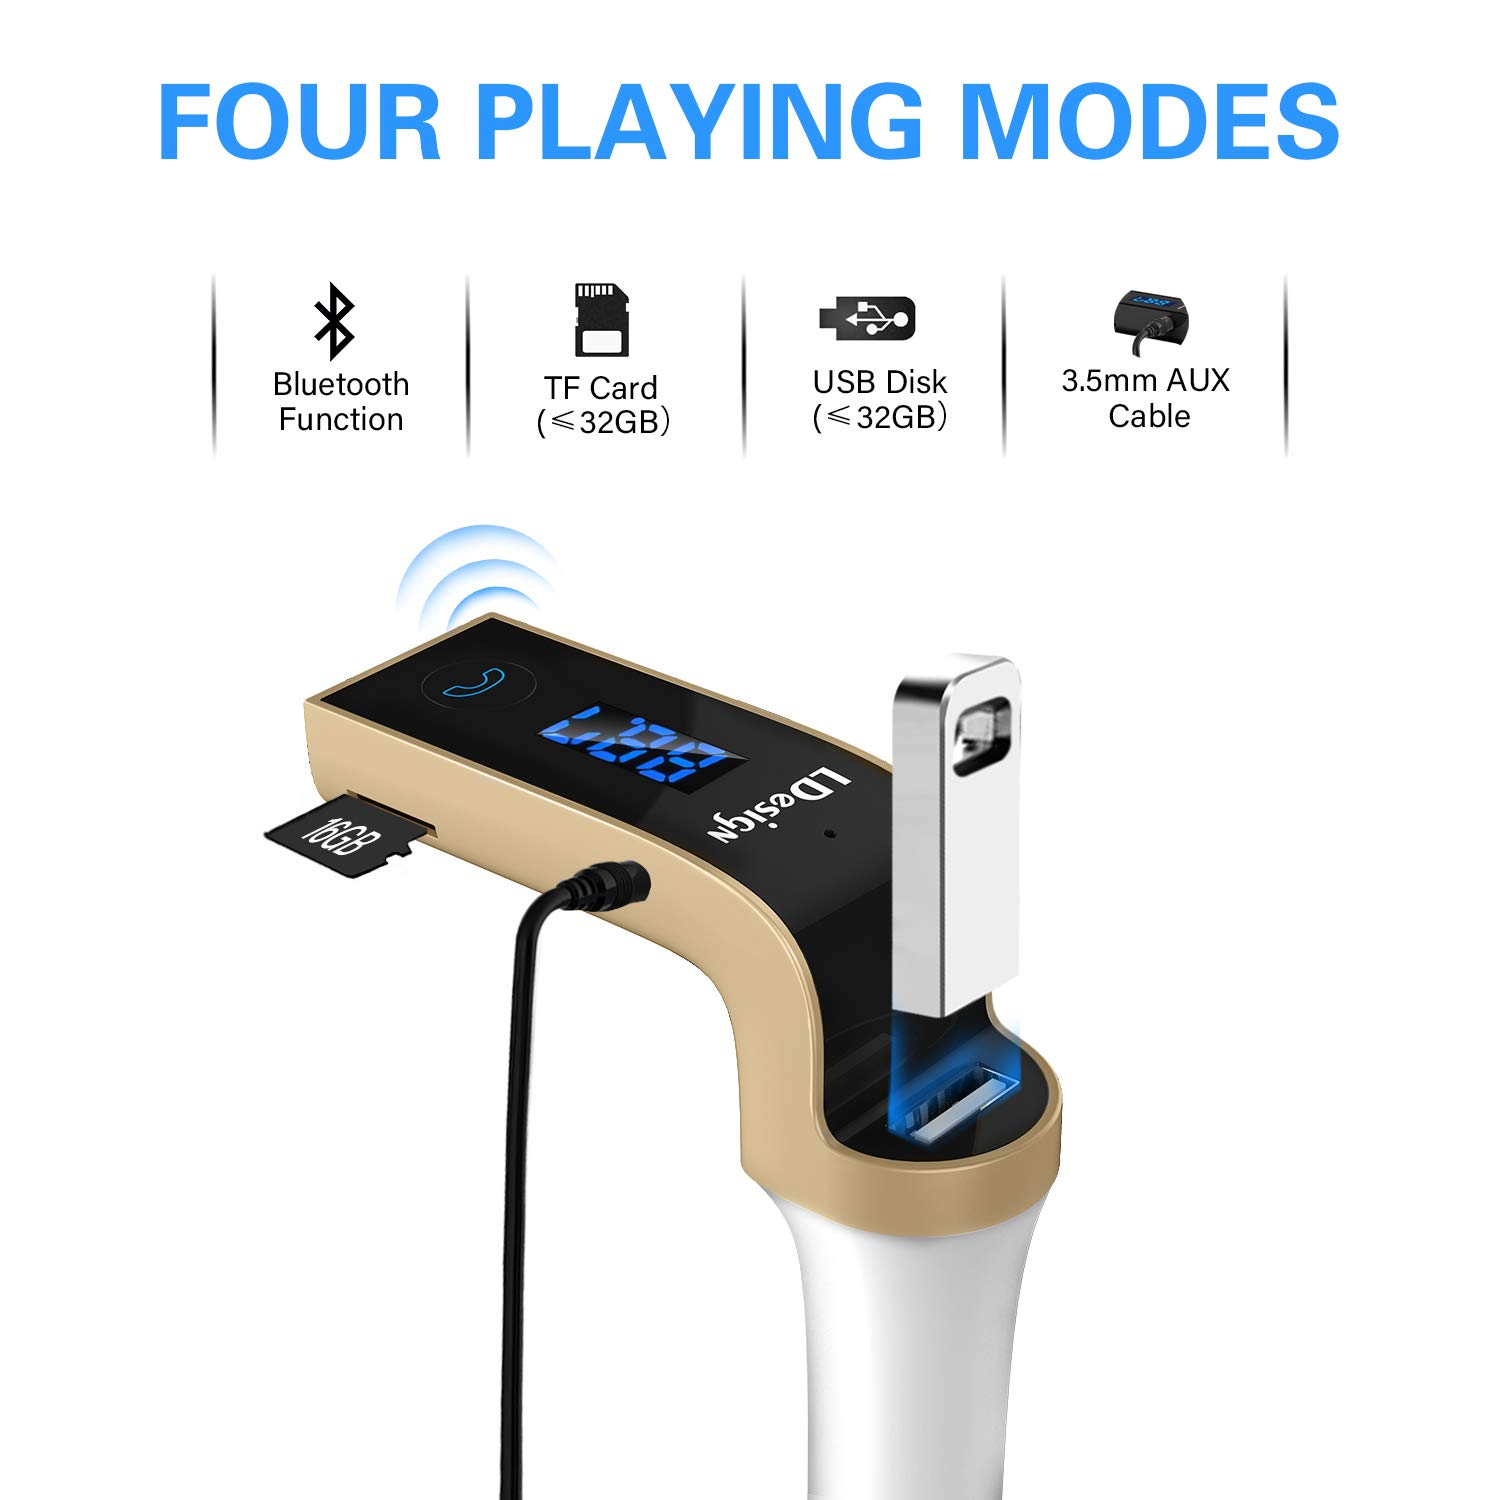 FM Transmitter, LDesign Bluetooth Wireless in-Car FM Radio Adapter Car Kit with Hand Free Call | Stereo 4 Modes Music Play | TF Card &U-Disk Reading Applicable for All Smart Phones -Gold